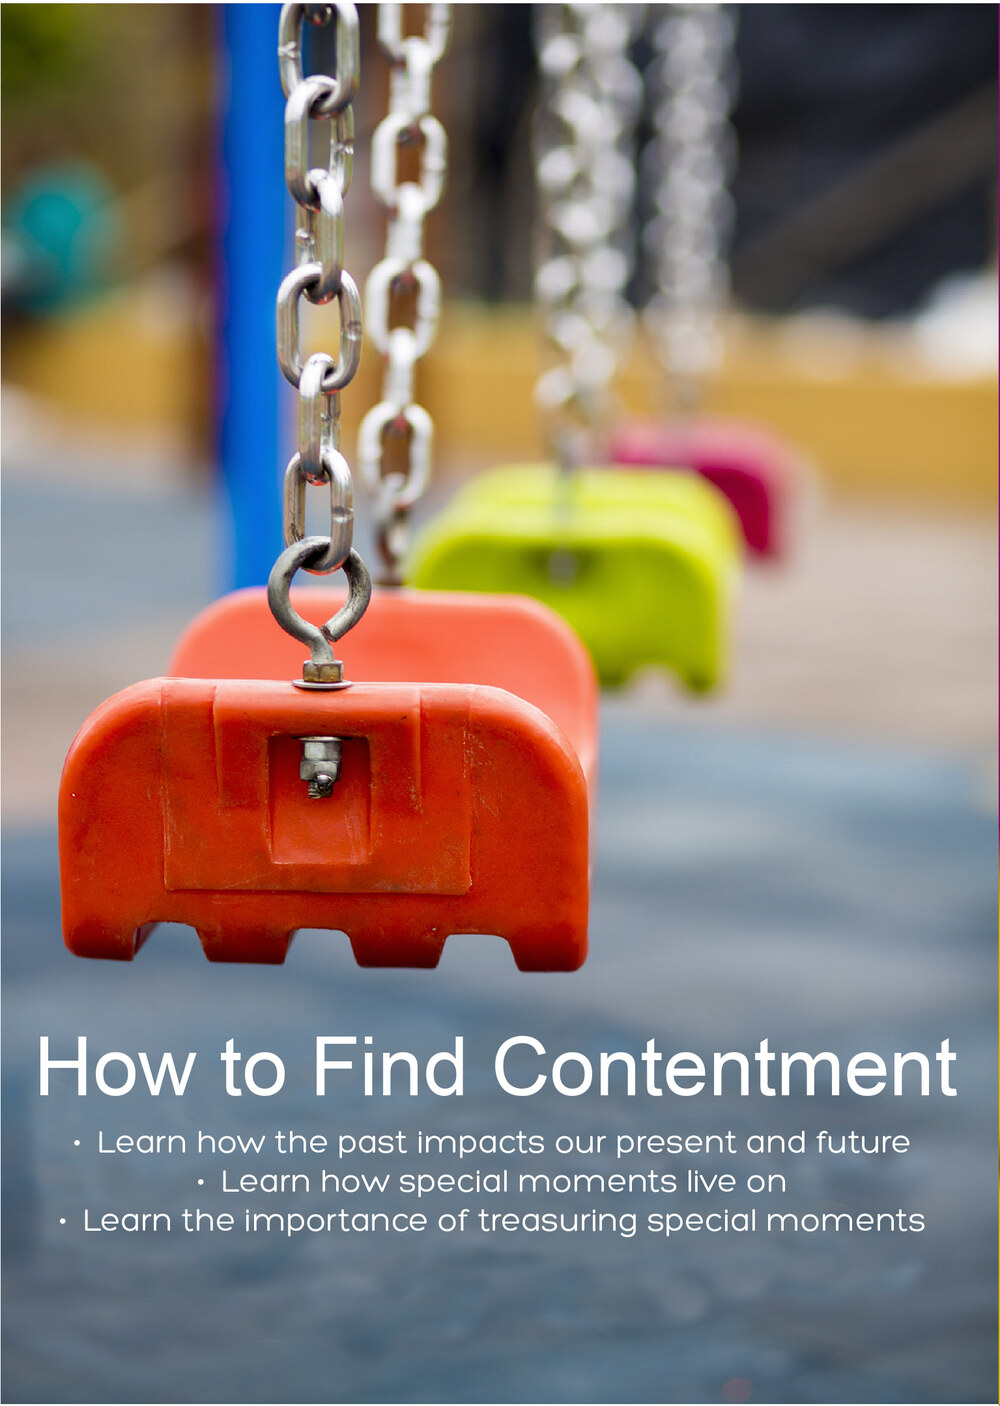 C81 - How to Find Contentment - Learn How The Past Impacts our Present & future